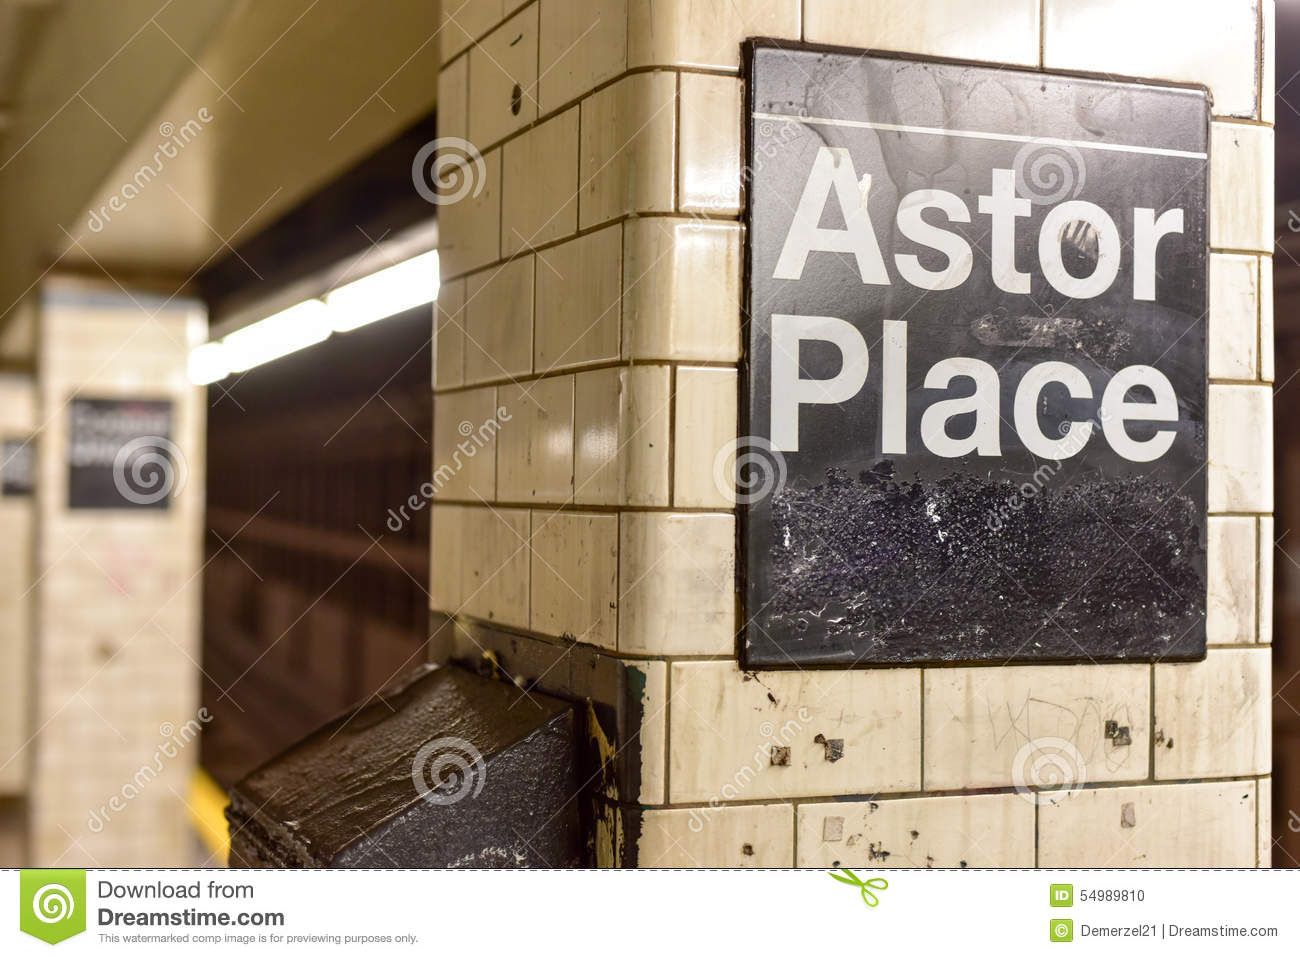 Astor Place Subway Station - New York City